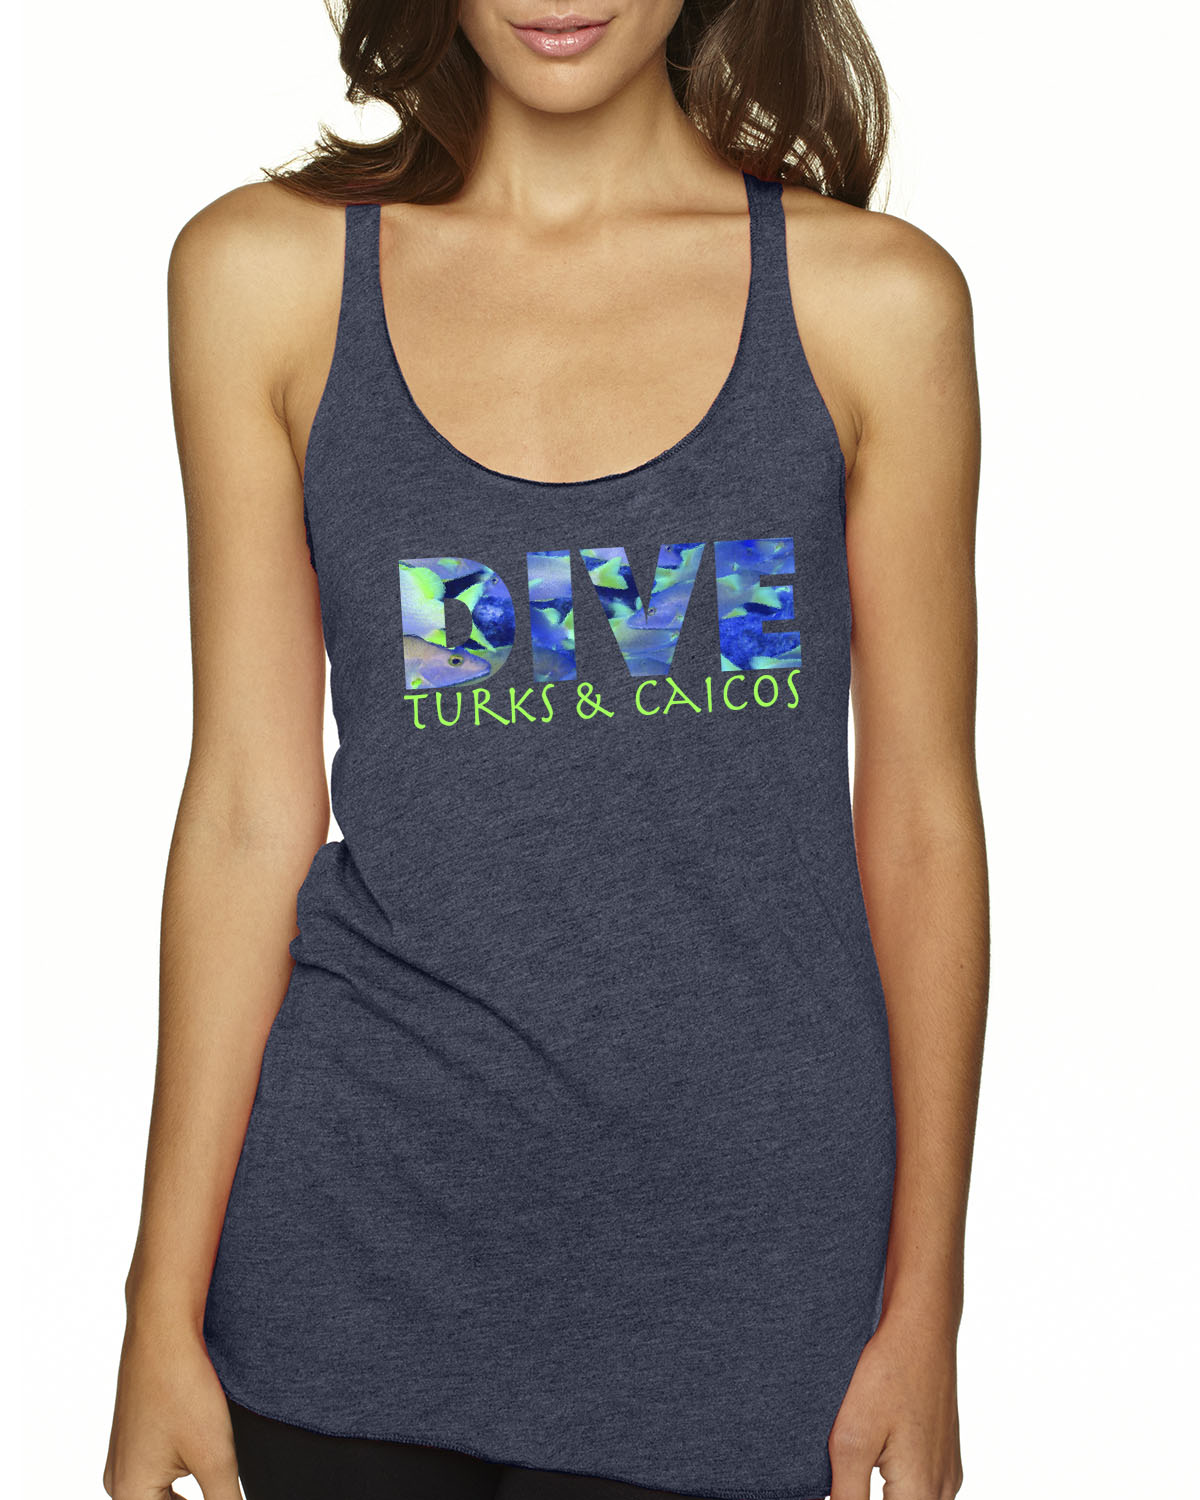 Racer-Back DIVE Turks & Caicos Tank Top (Indigo)